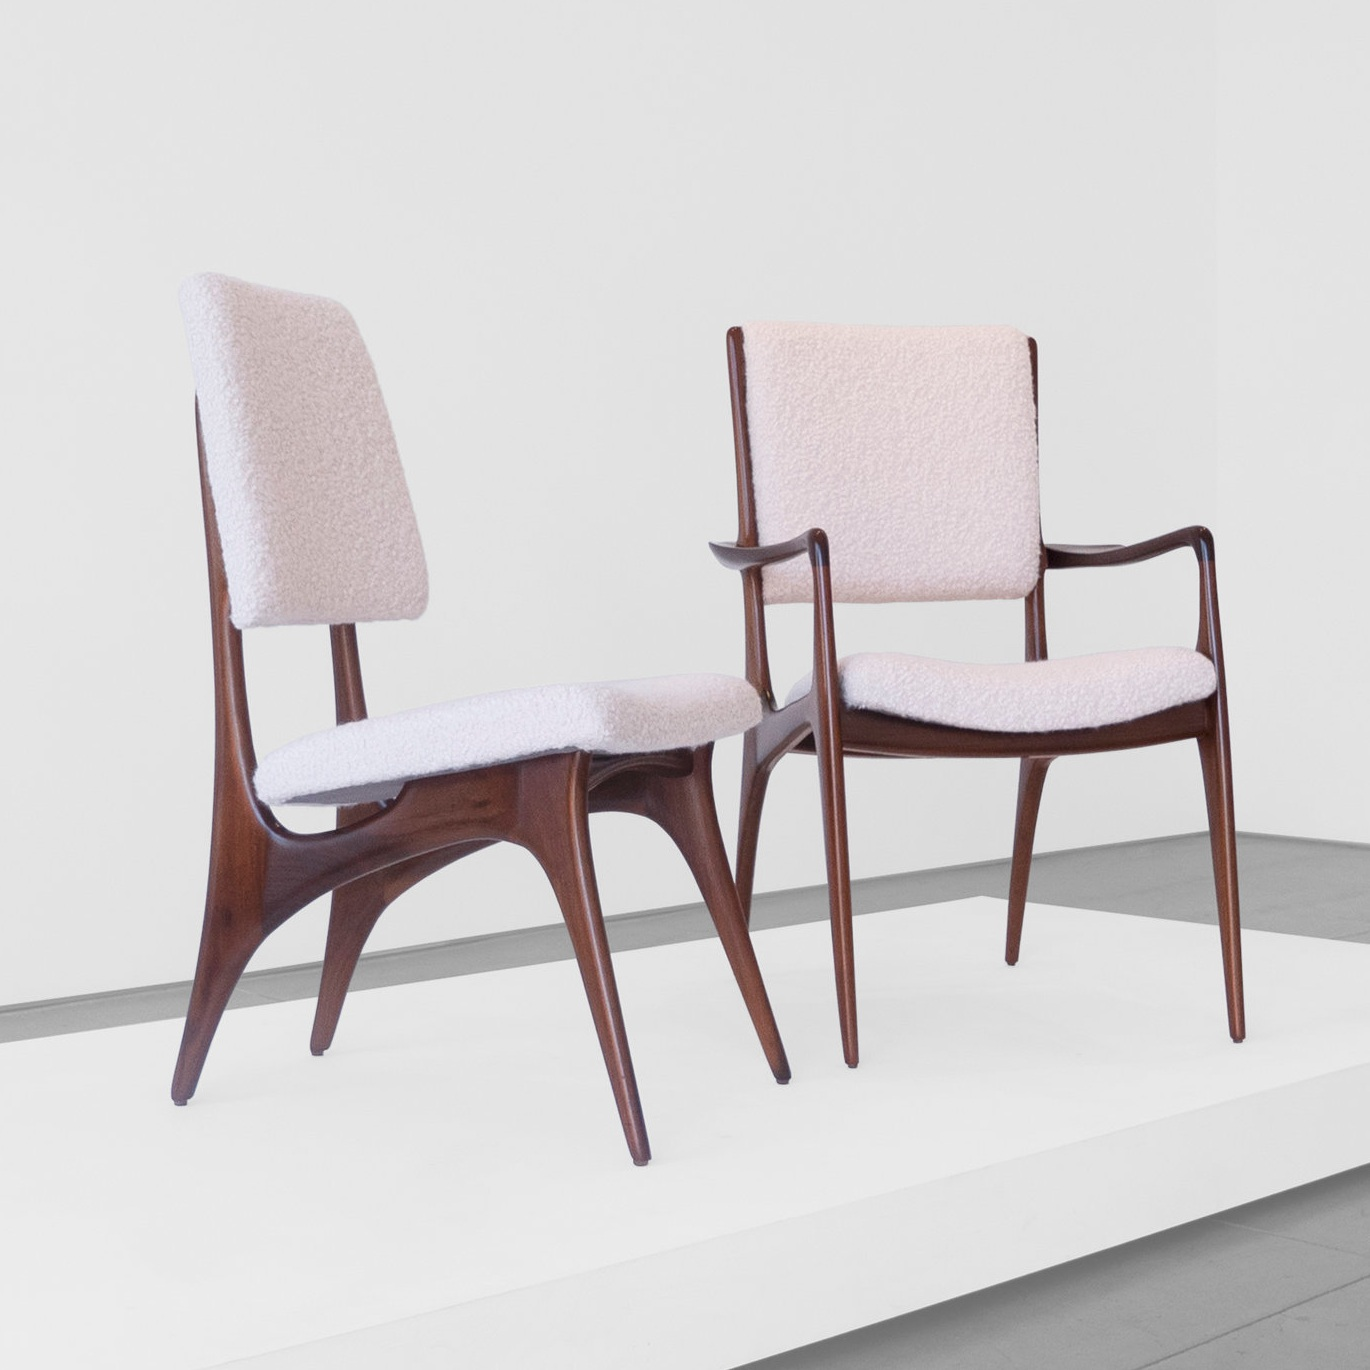 vladimir kagan dining chairs for dreyfuss $6,500